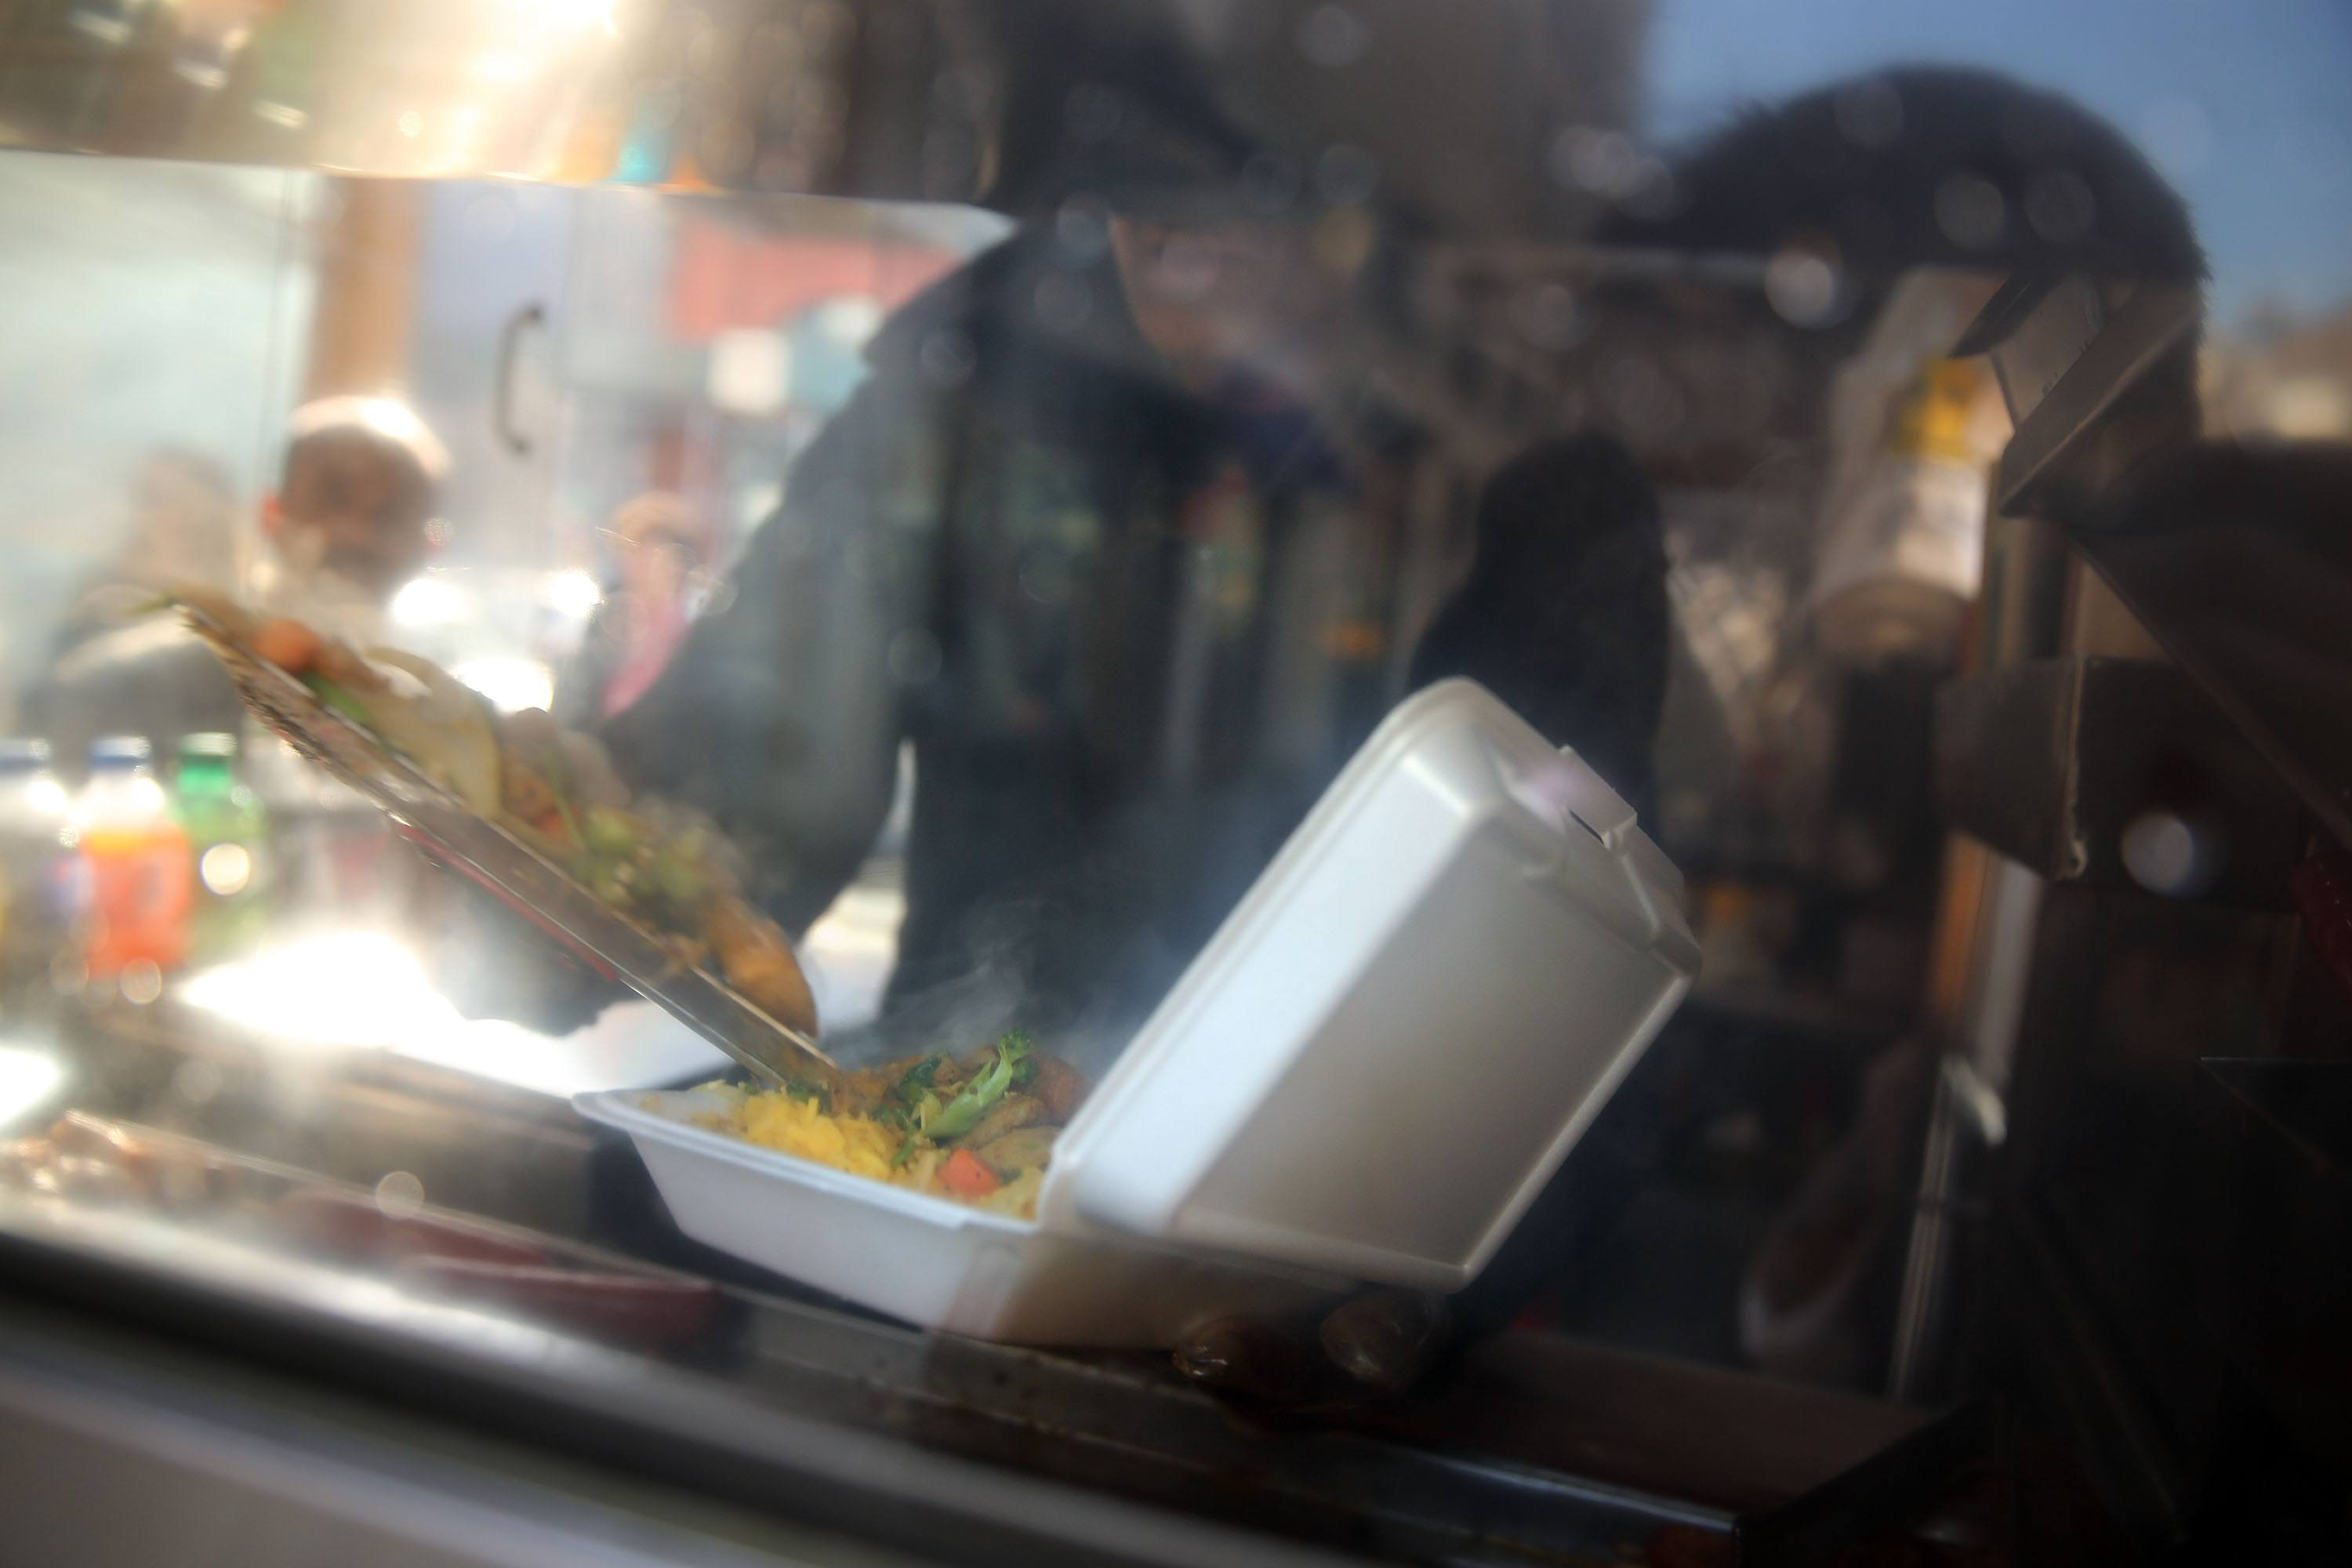 A food cart worker fills a styrofoam take-out container with food